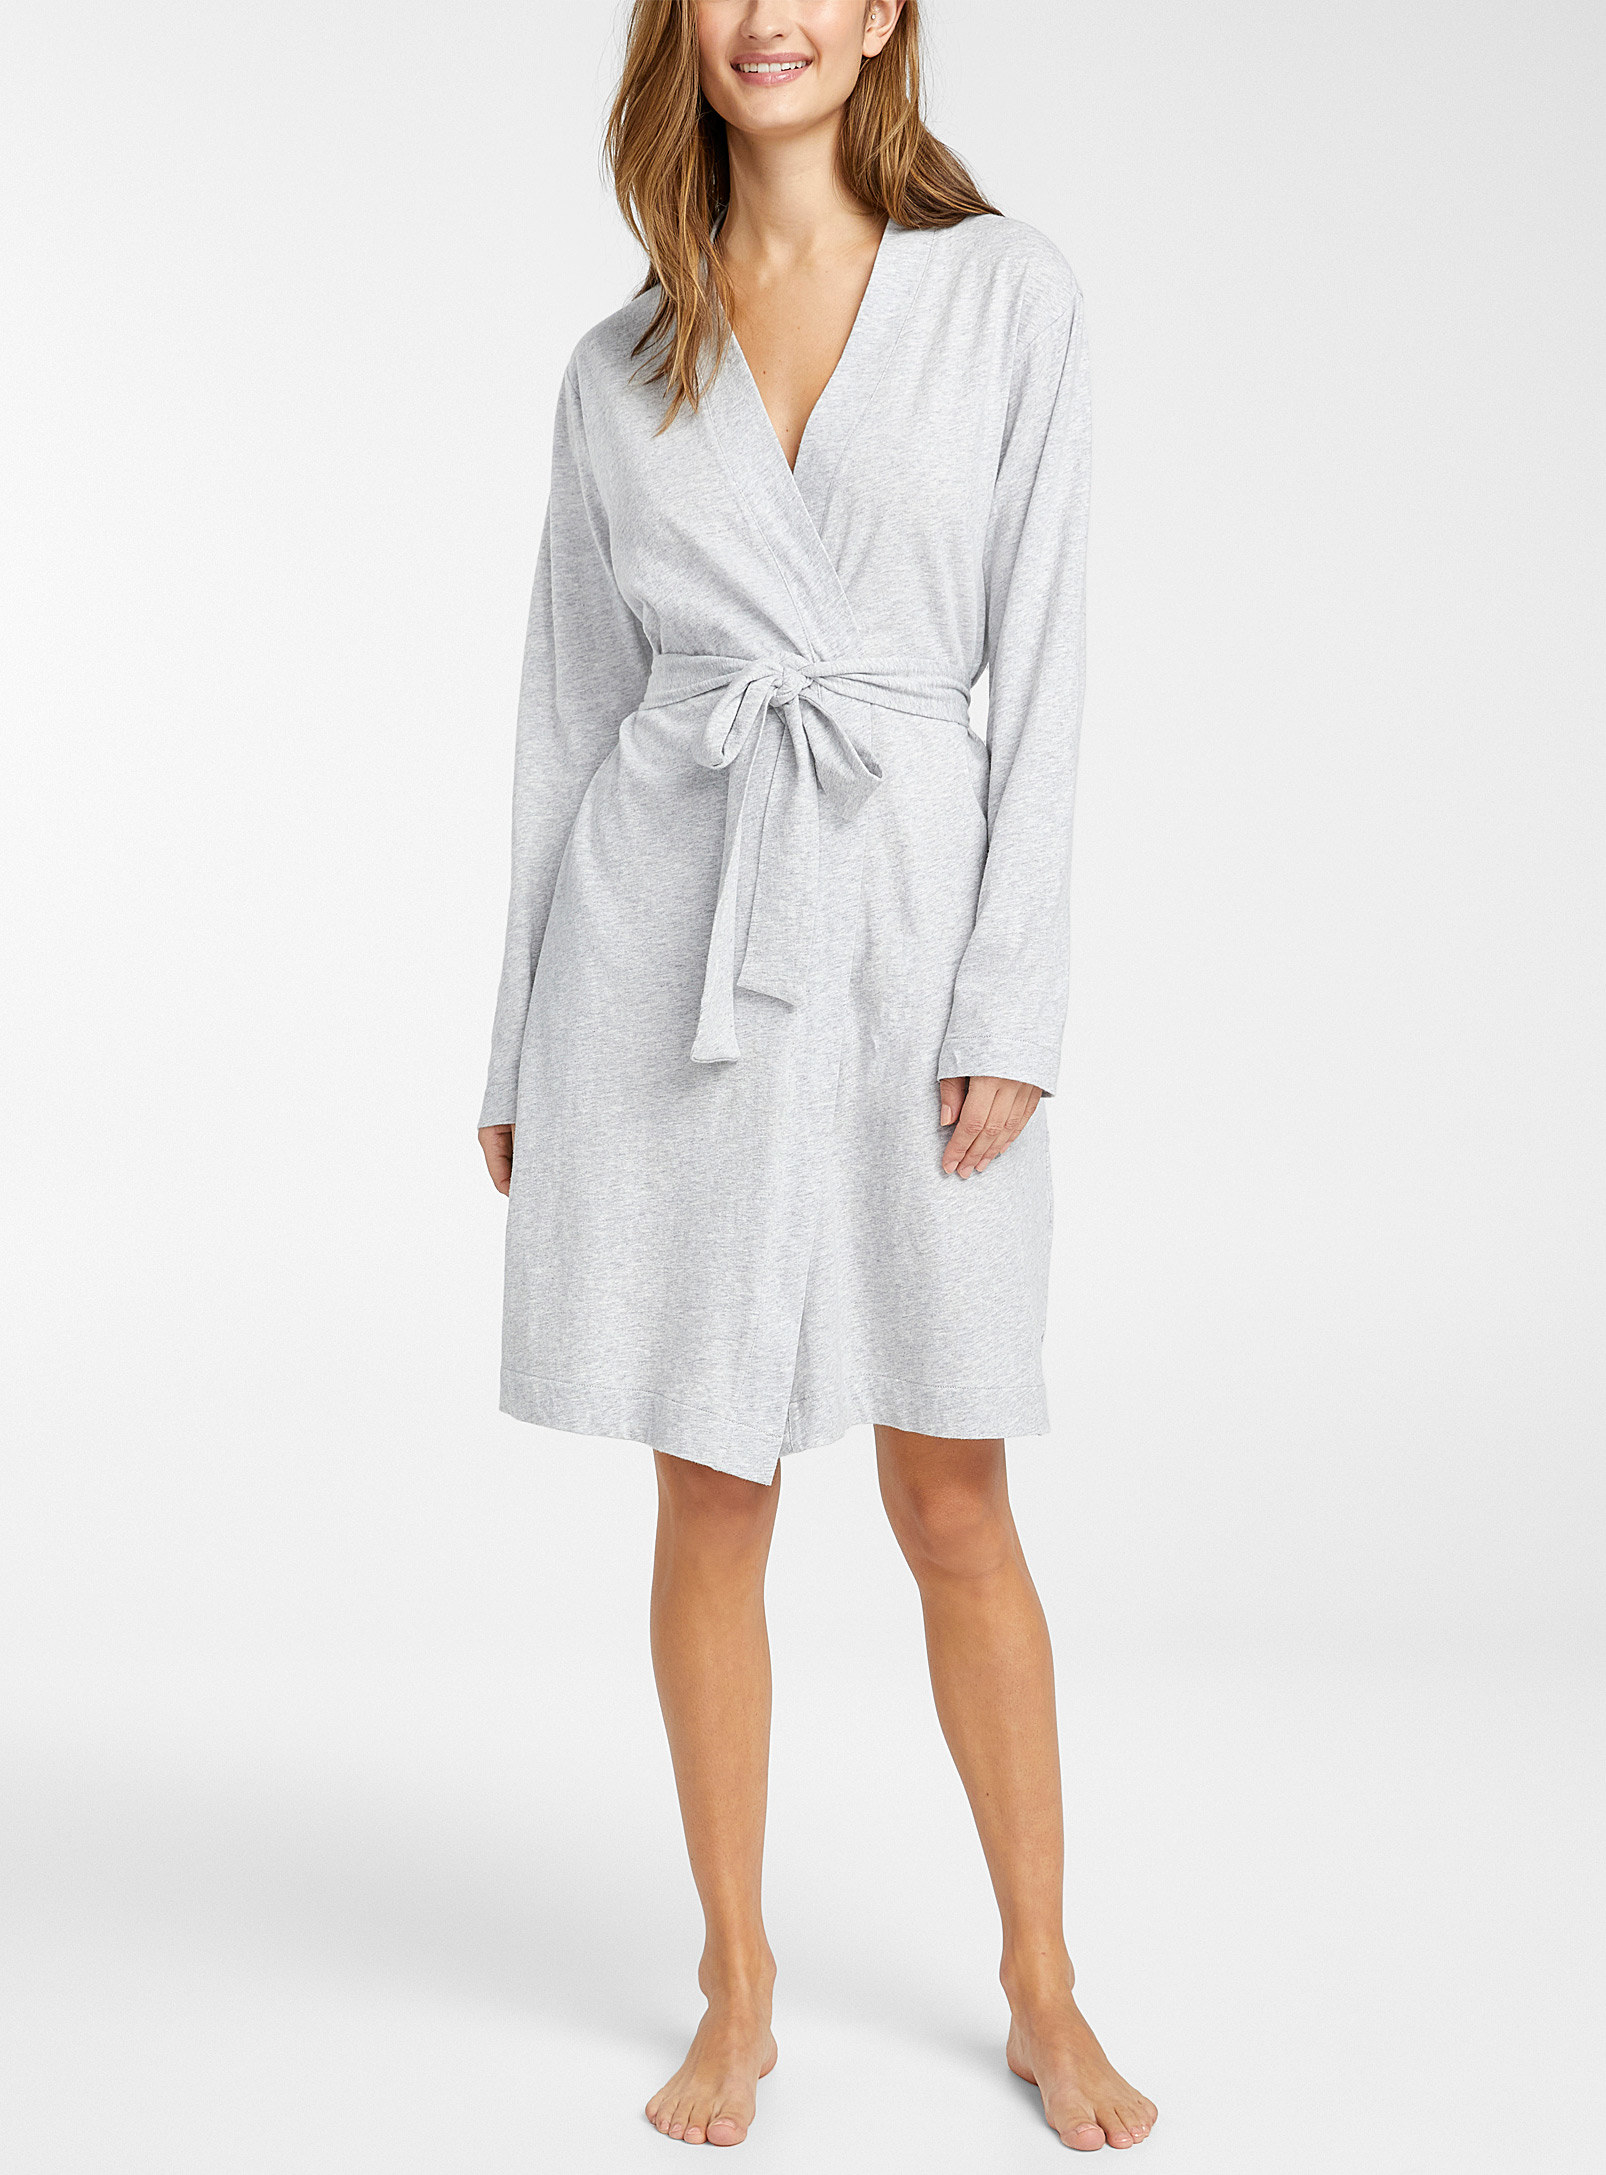 person standing with the bathrobe on